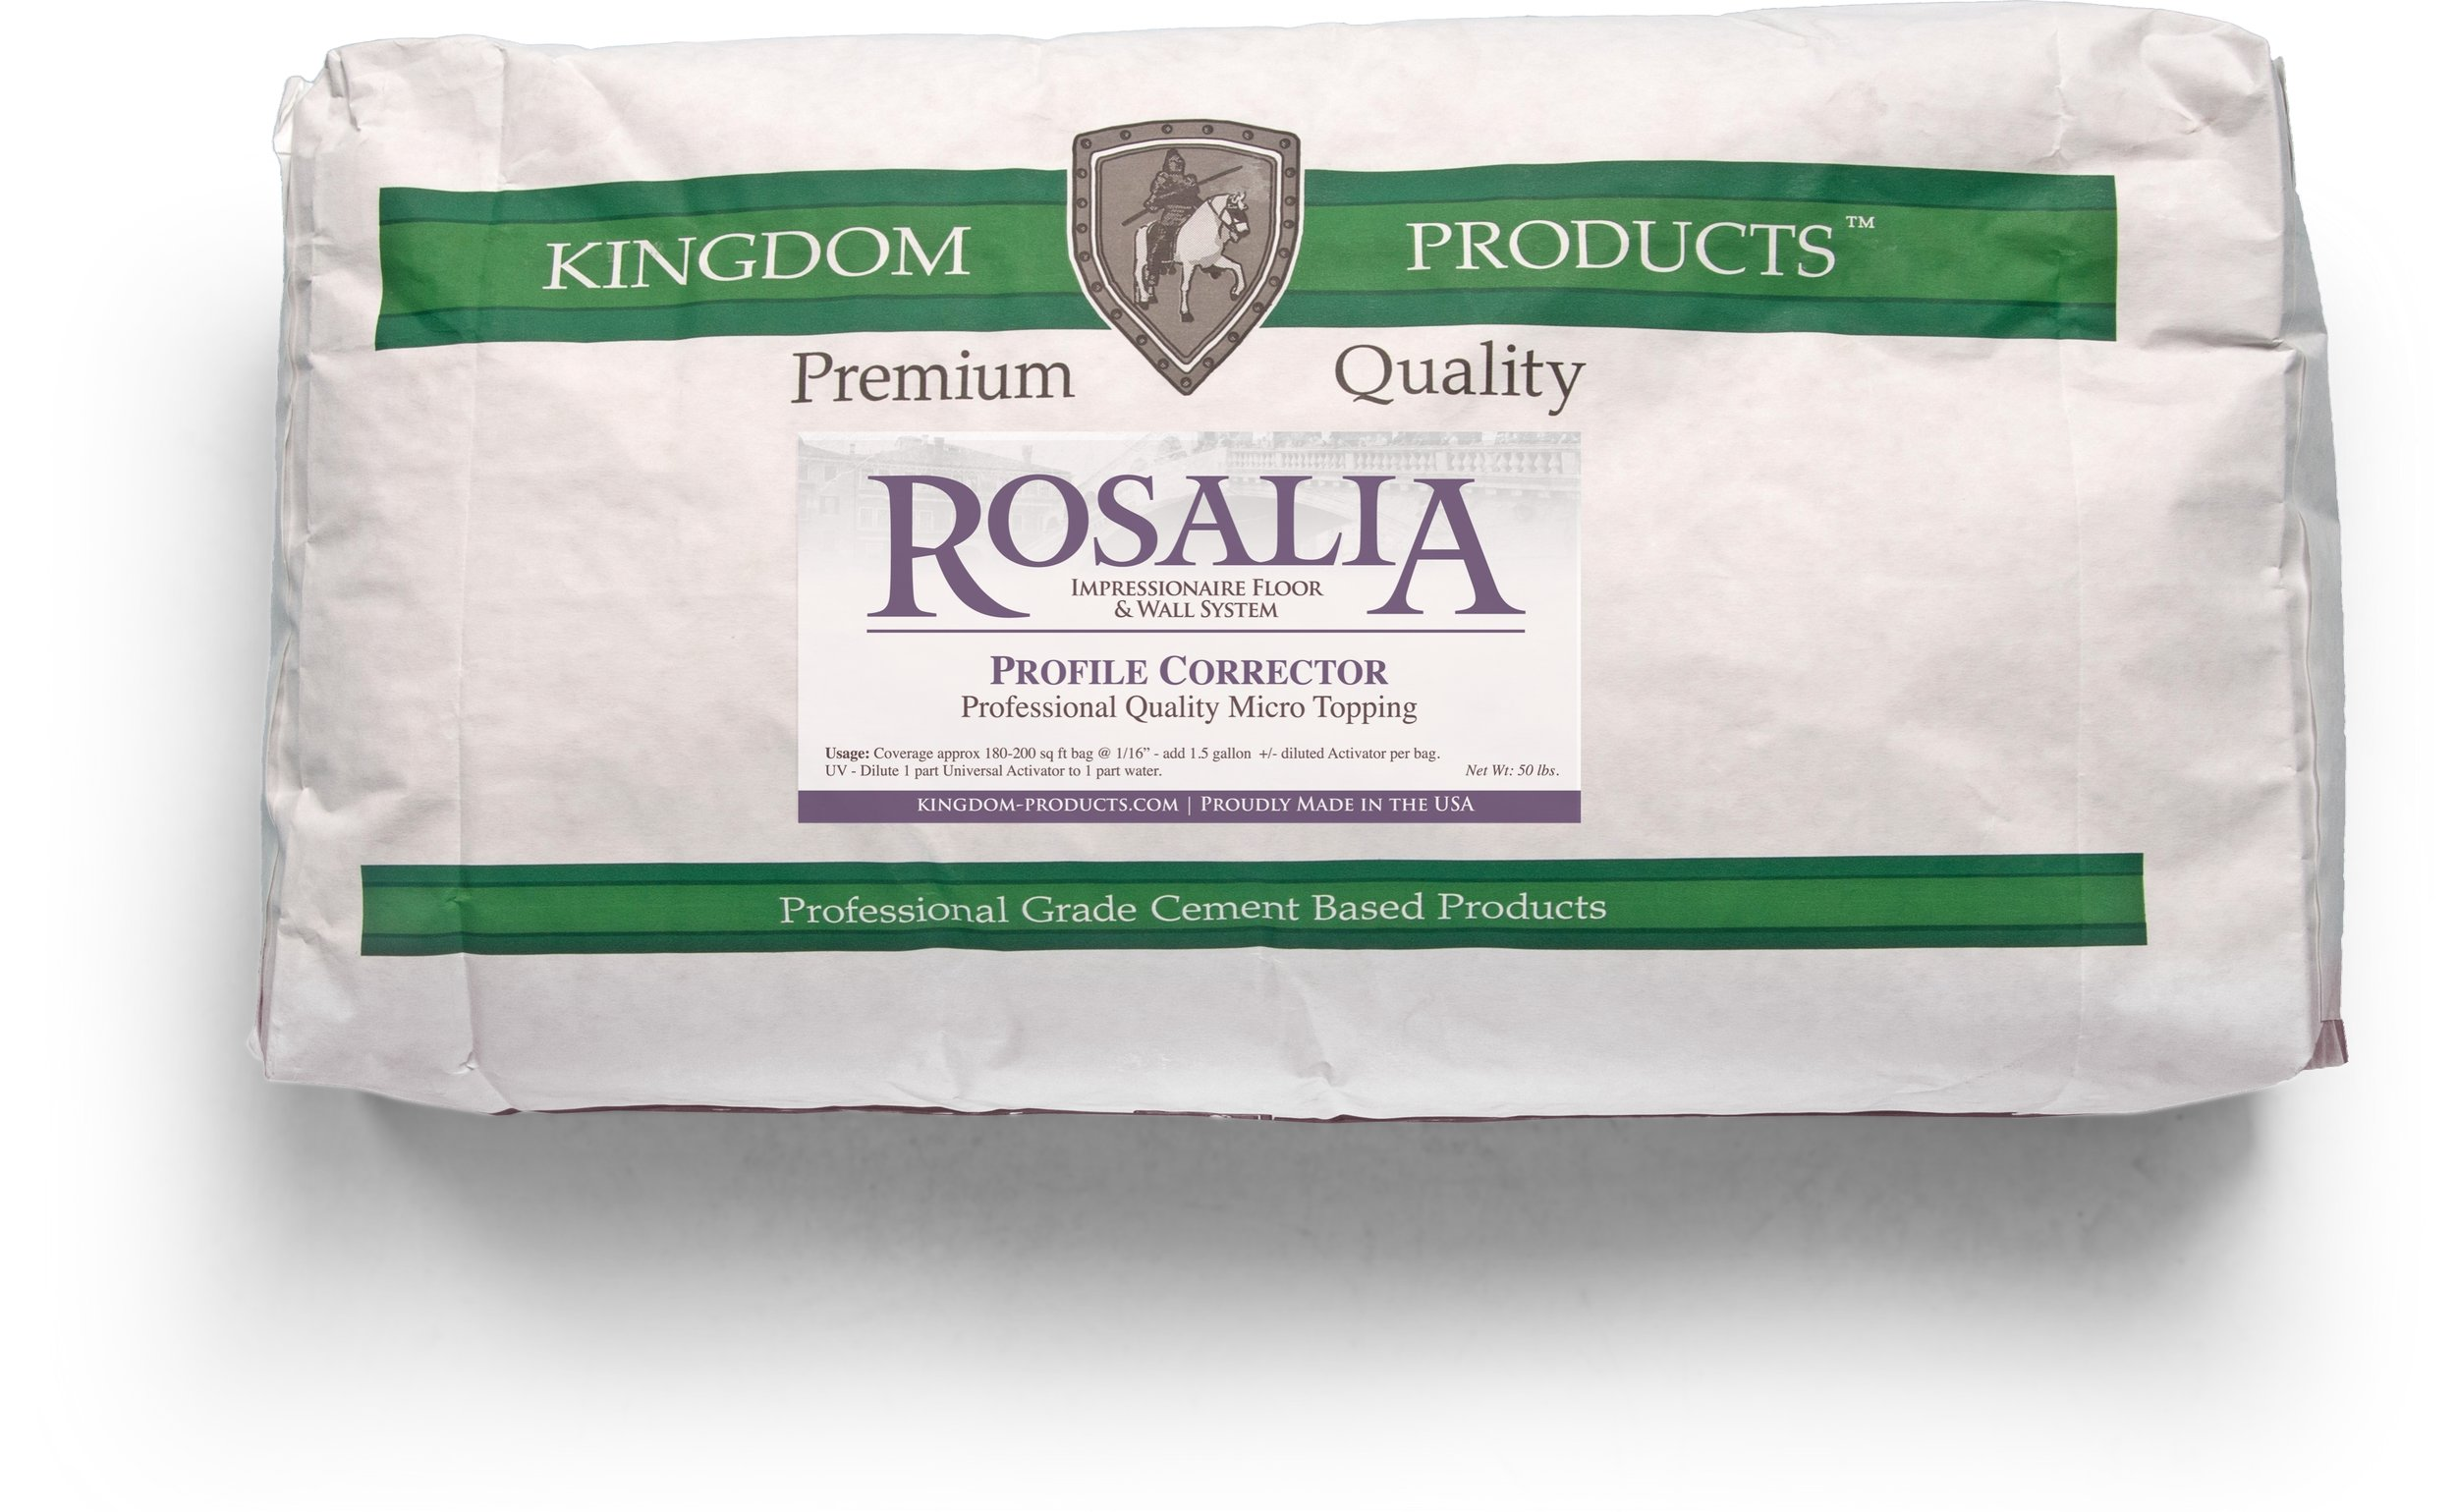 Rosalia Profile Corrector   Packaged in 50lb Bags   Technical Data